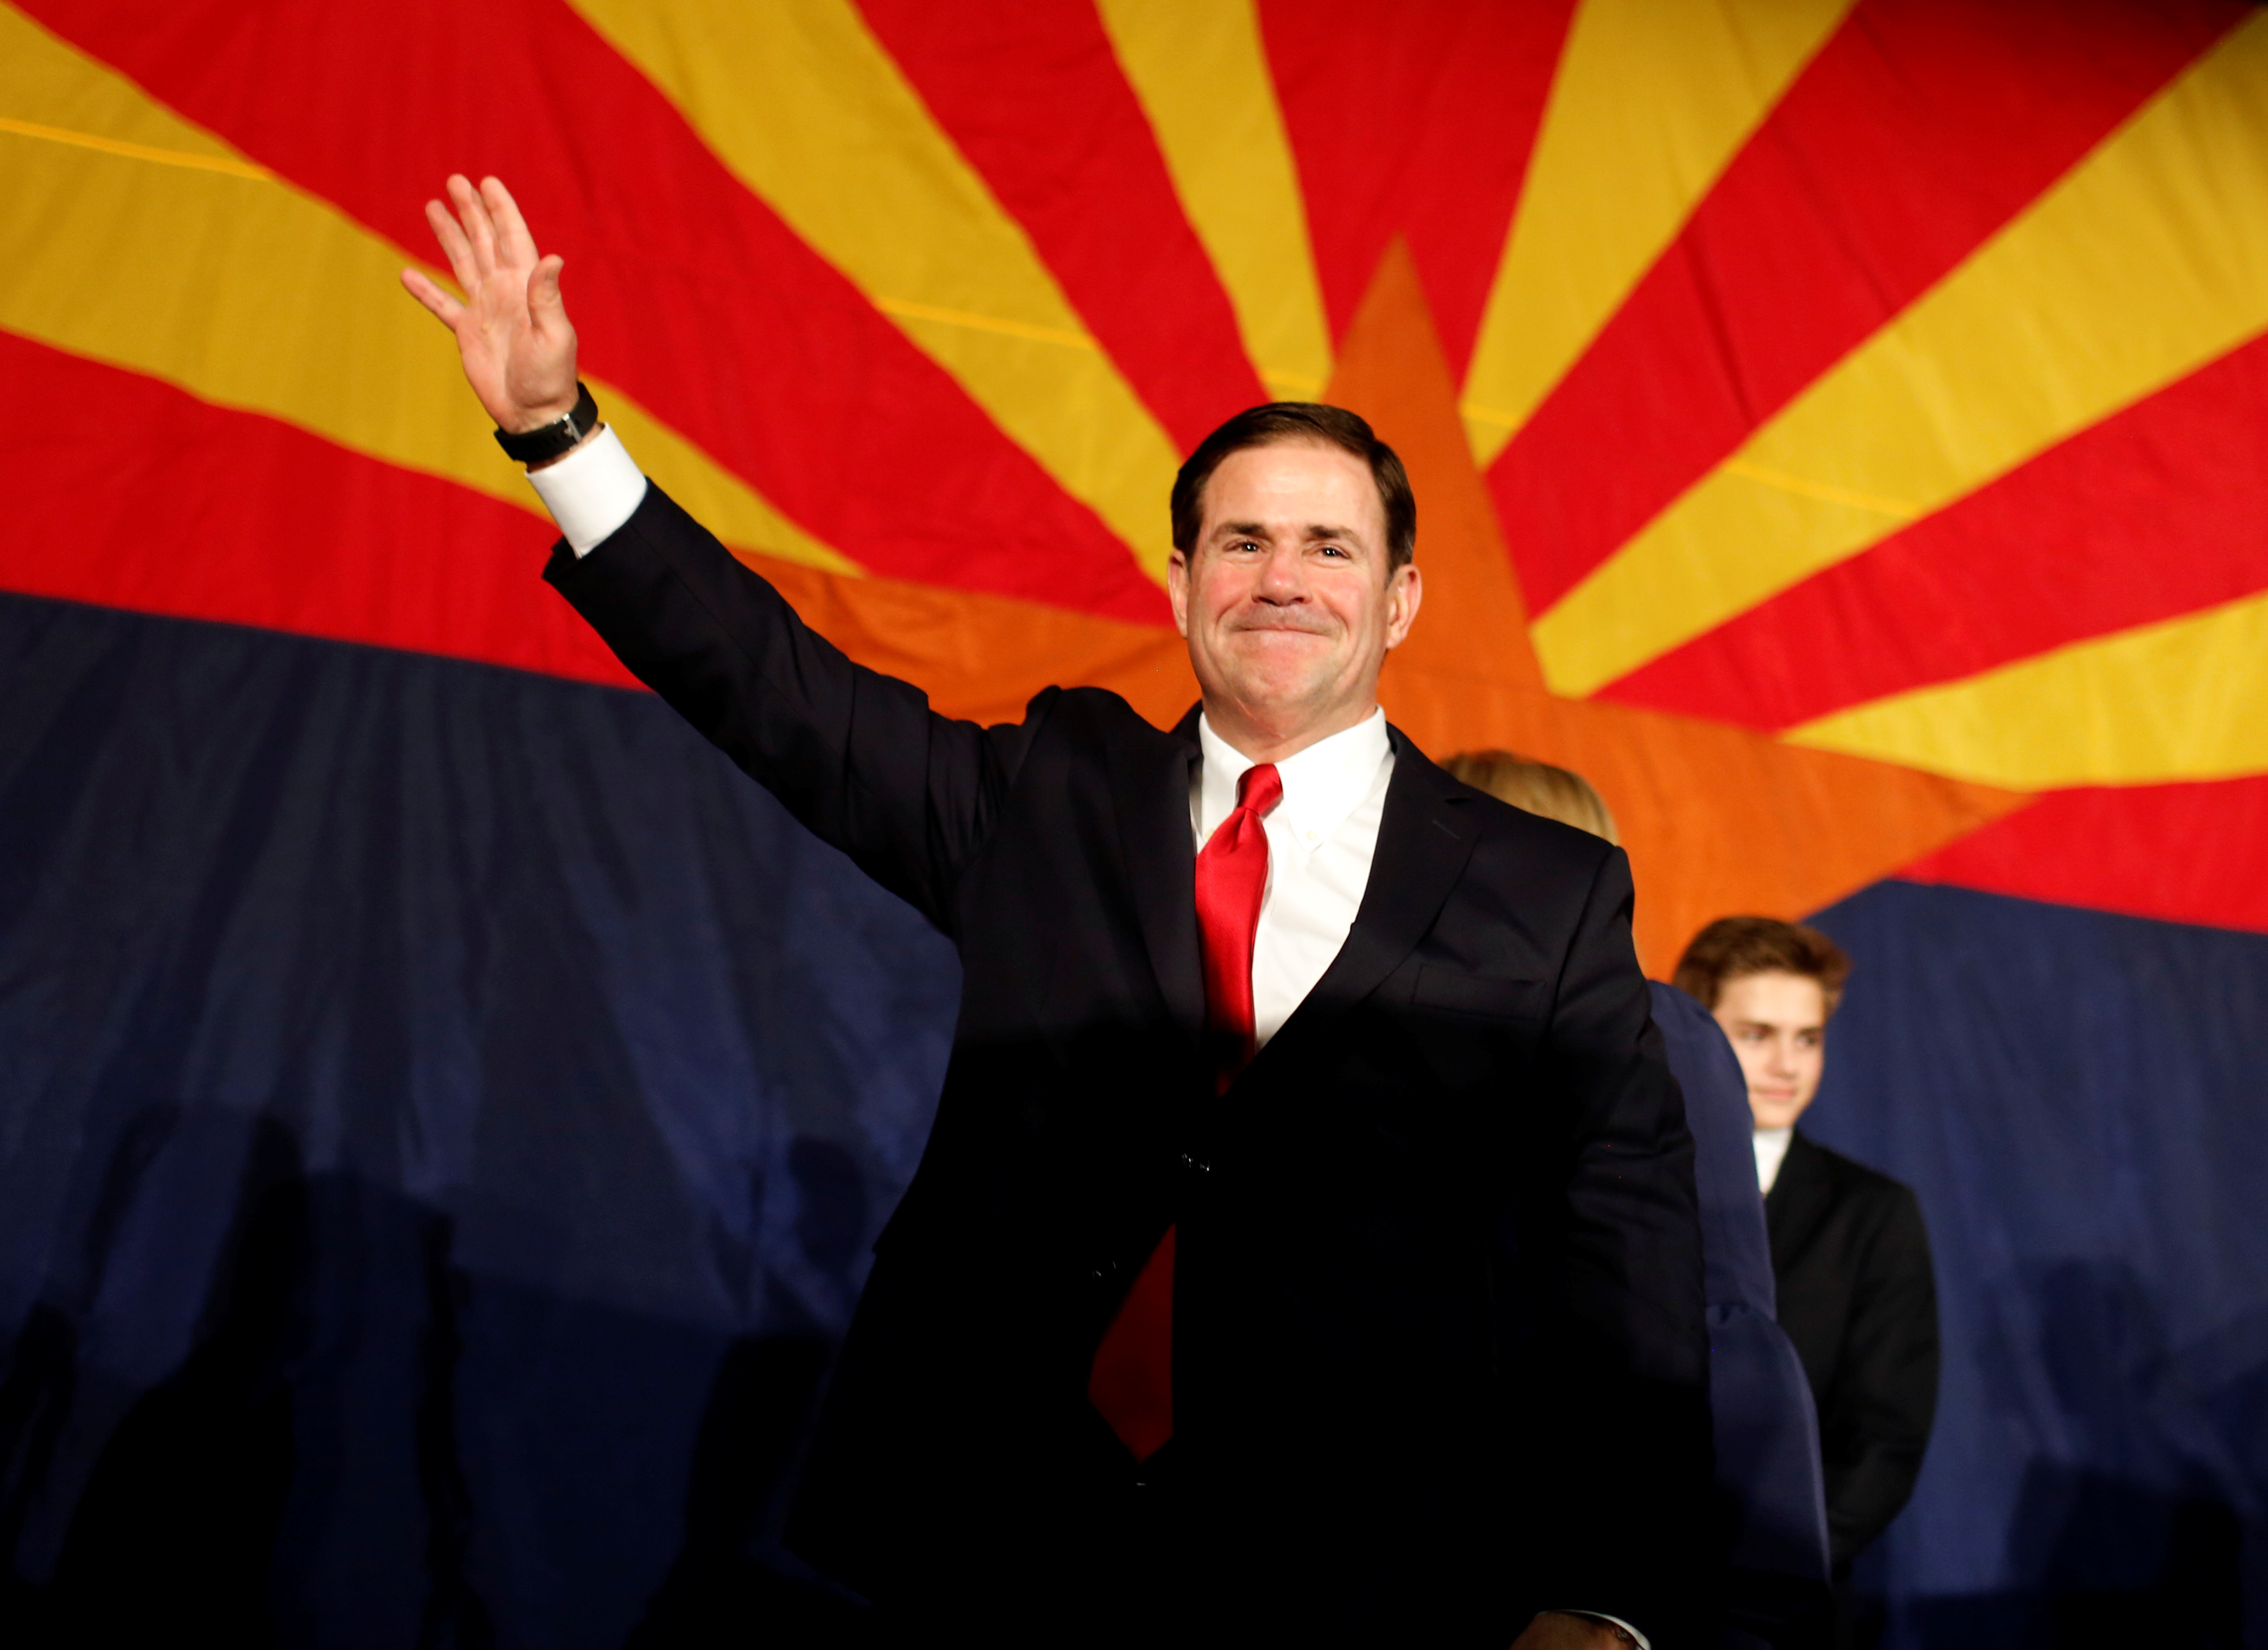 Arizona Gov. Doug Ducey greets the GOP midterm elections watch party after being re-elected in Phoenix, Arizona, U.S. November 6, 2018. REUTERS/Nicole Neri